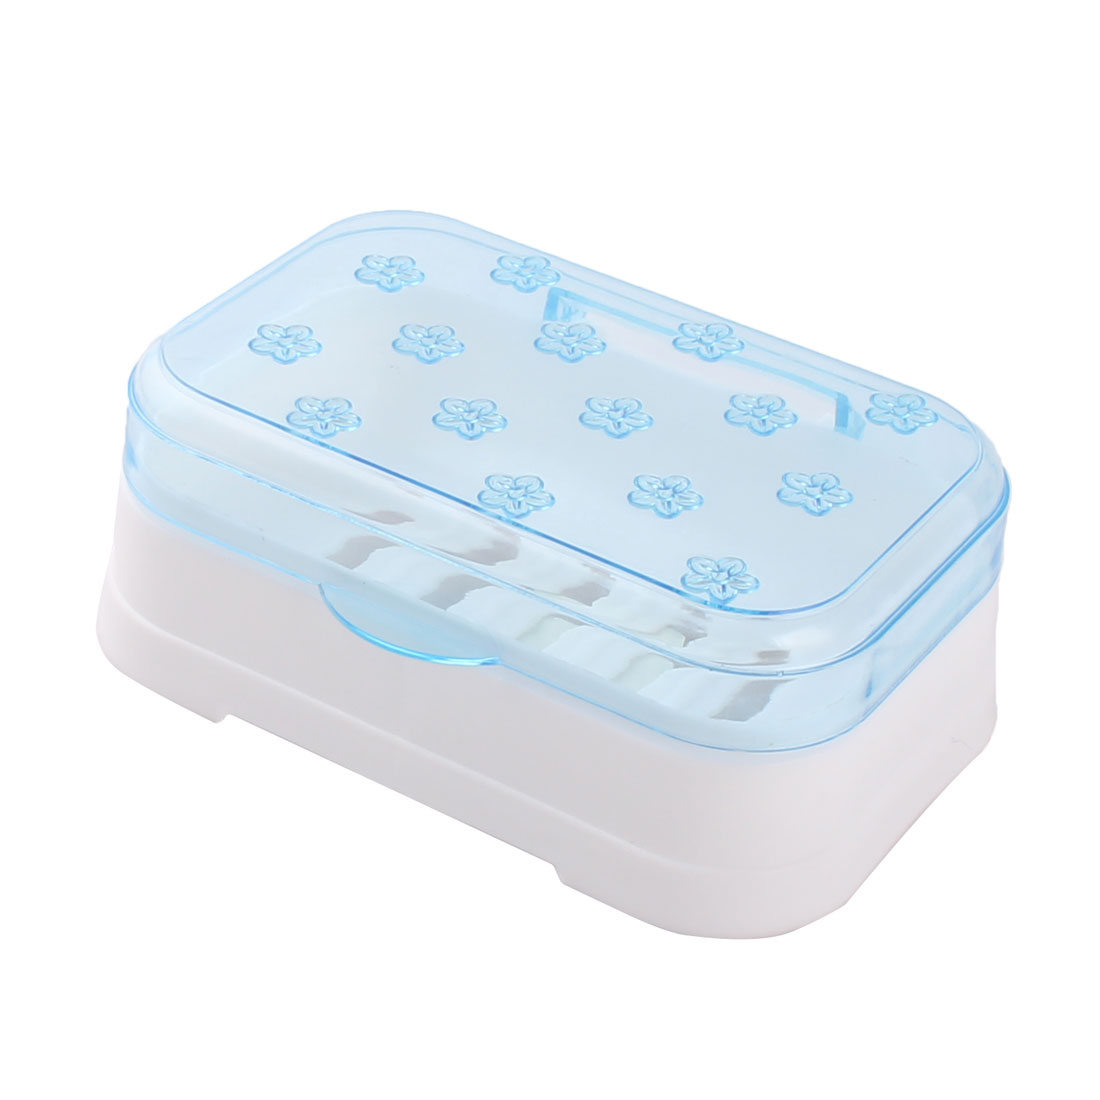 Household Bathroom Plastic Flower Pattern Hollow Out Soap Holder Container Box